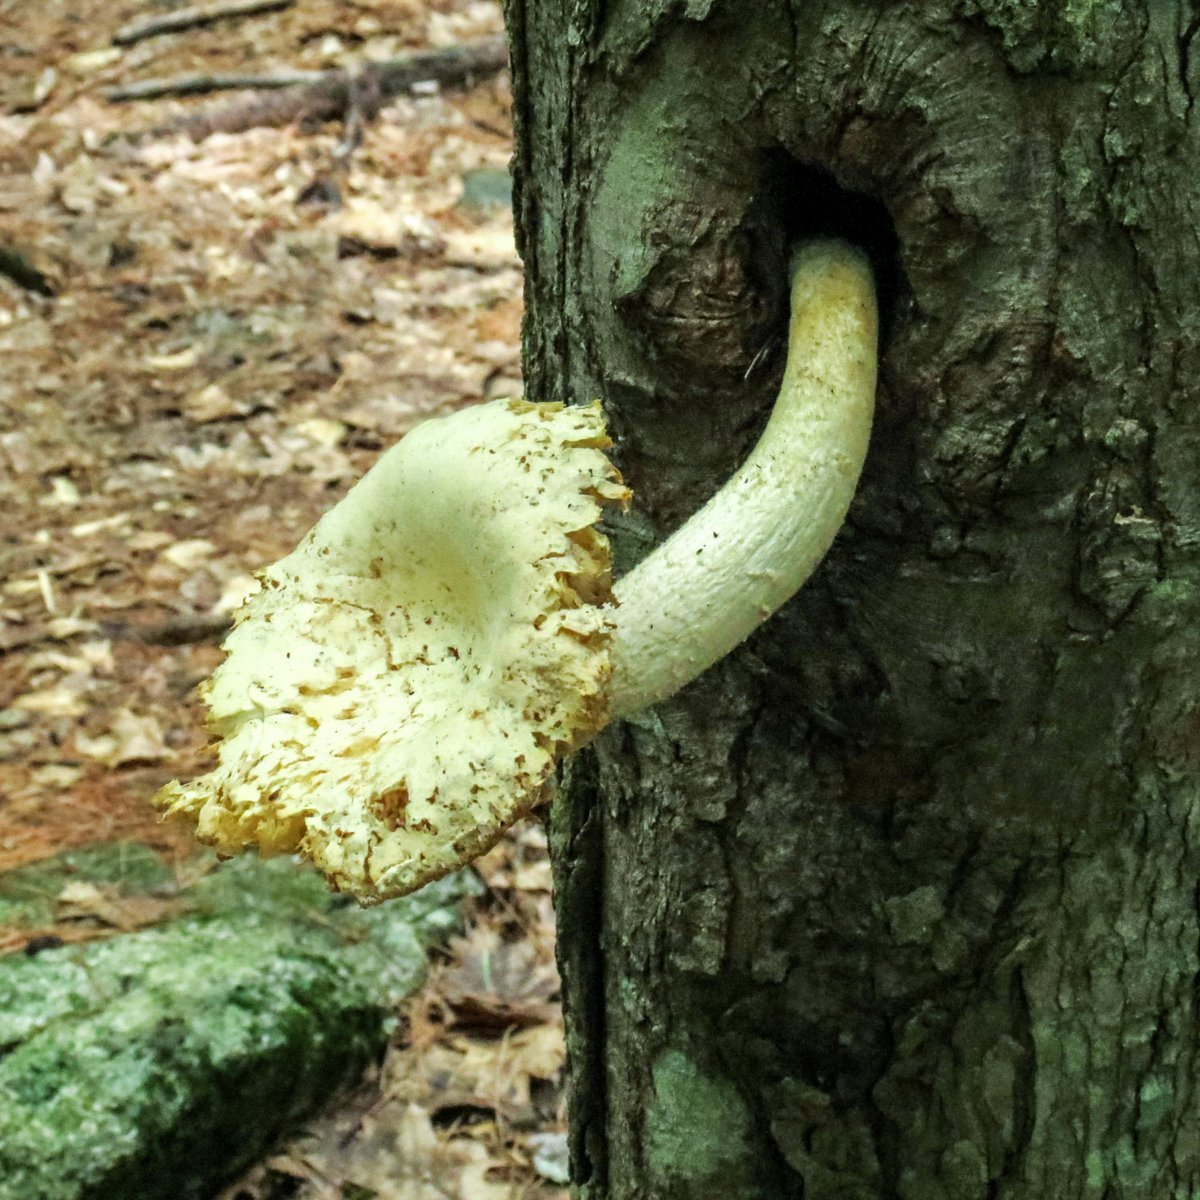 3. Mushroom on Tree